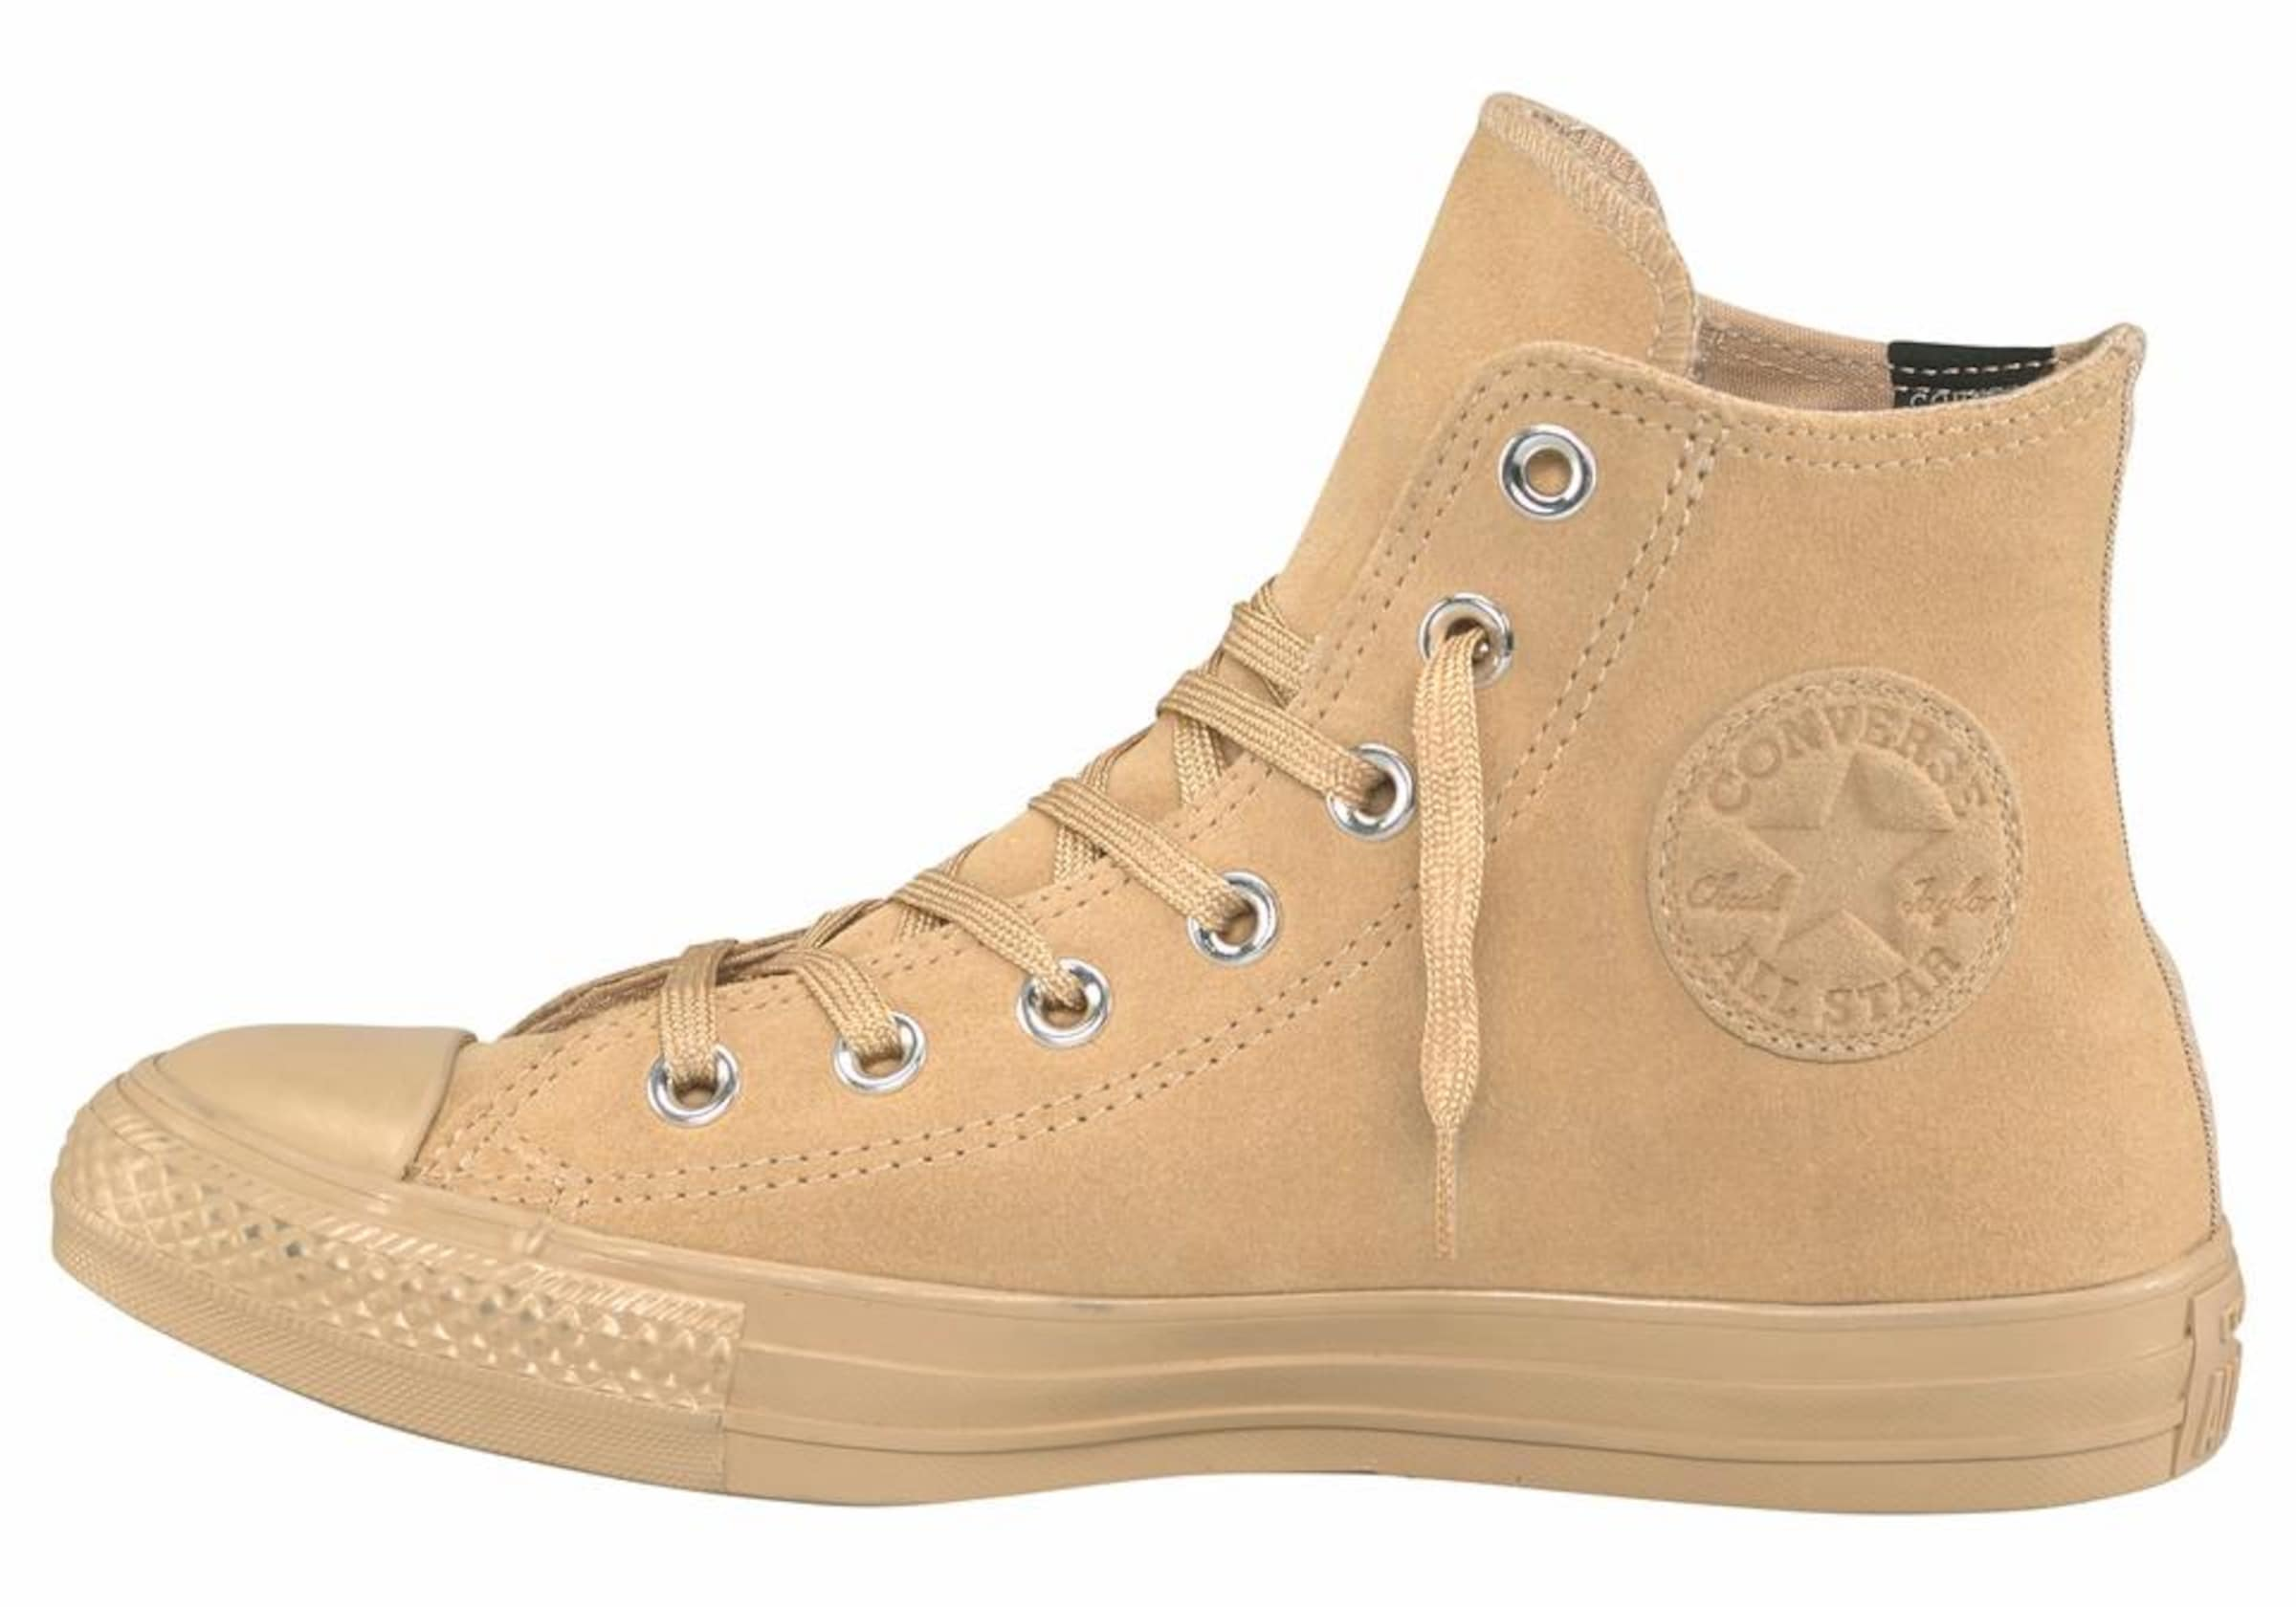 Sand In Converse Taylor All' 'chuck Sneaker zUVLpGqSM